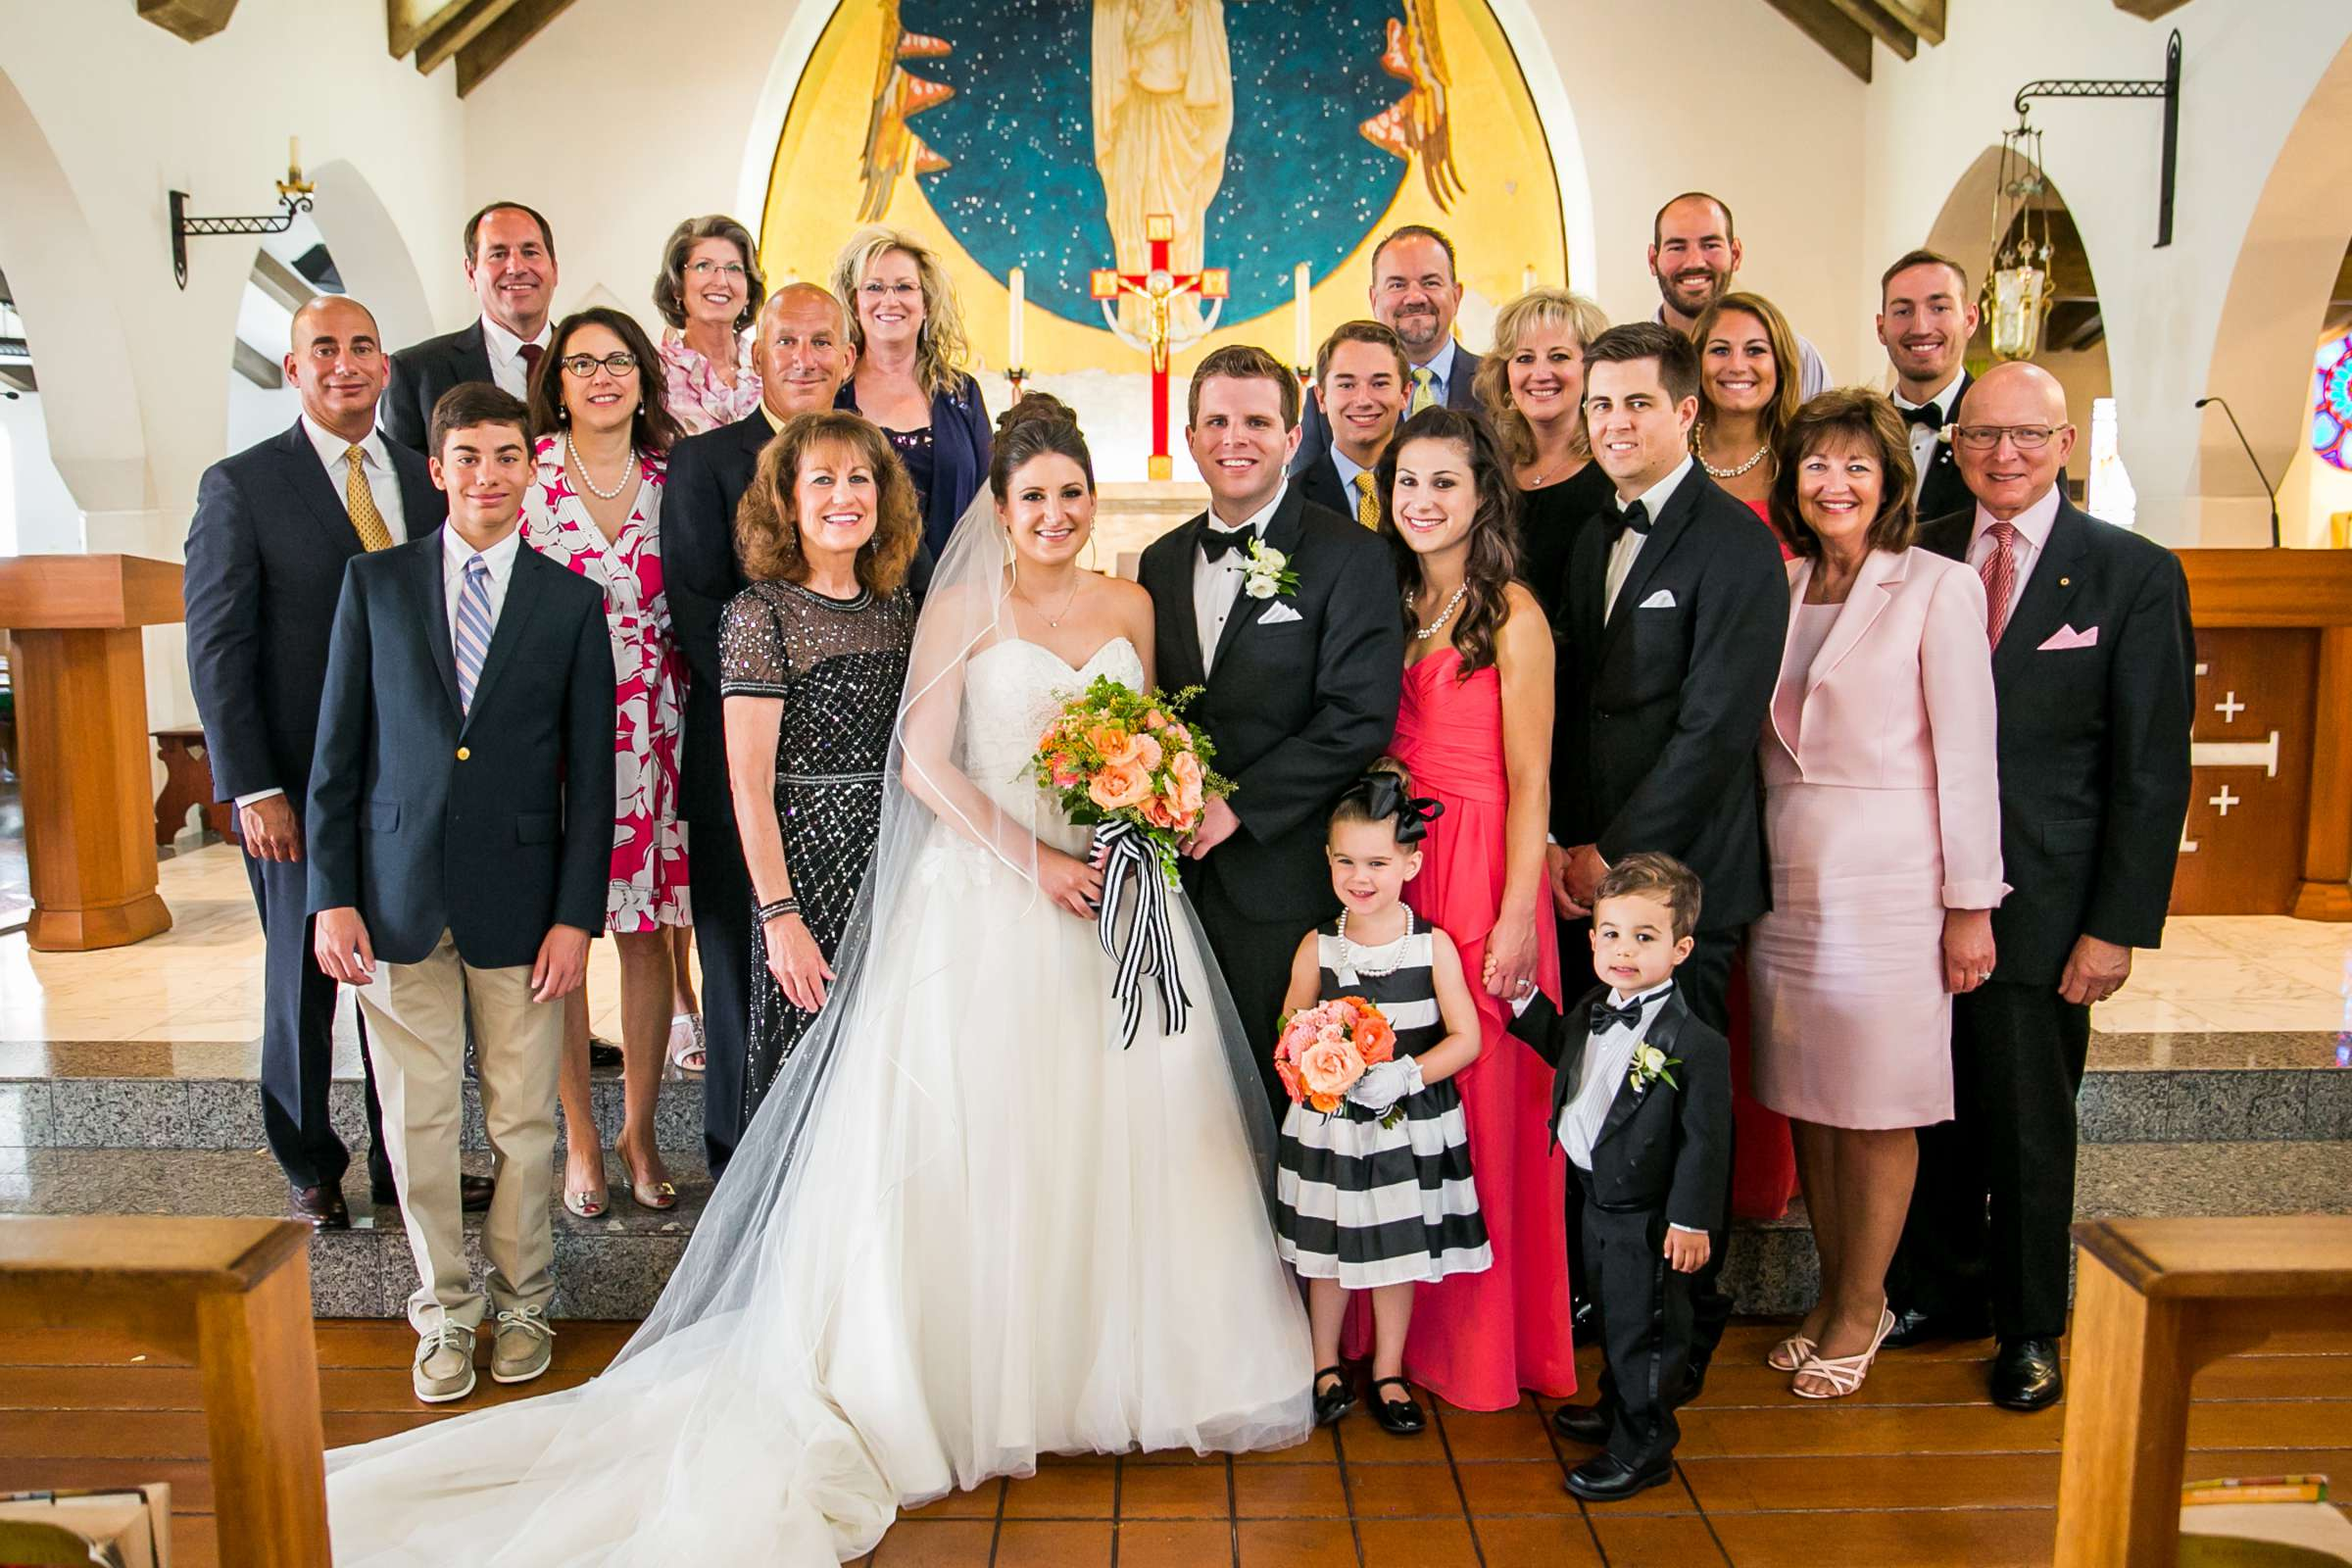 Bahia Hotel Wedding coordinated by I Do Weddings, Meredith and Jack Wedding Photo #46 by True Photography